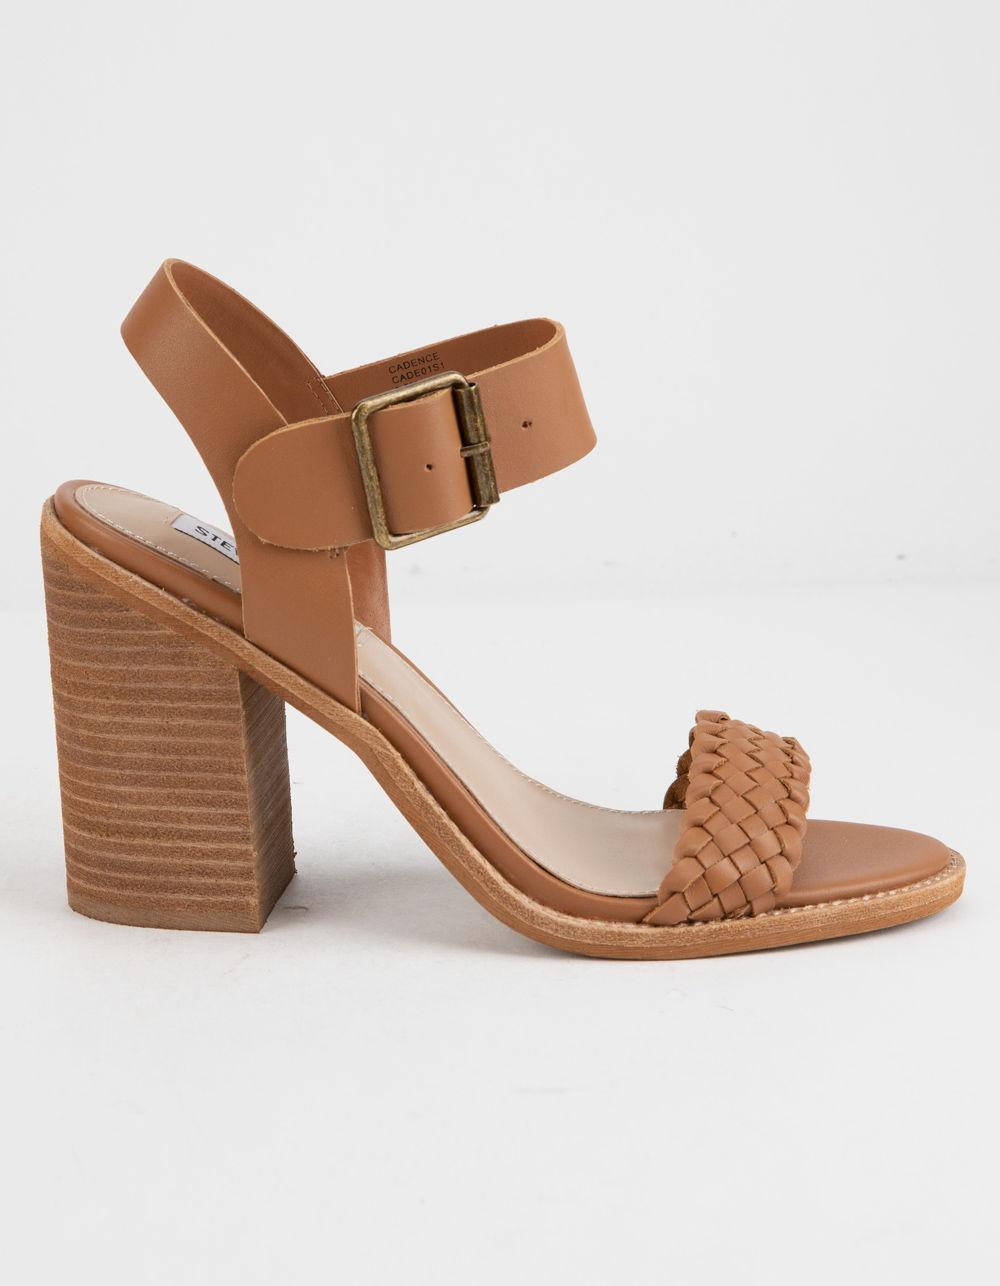 f3292cbd708 Lyst - Steve Madden Cadence Cognac Leather Womens Heeled Sandals in Brown